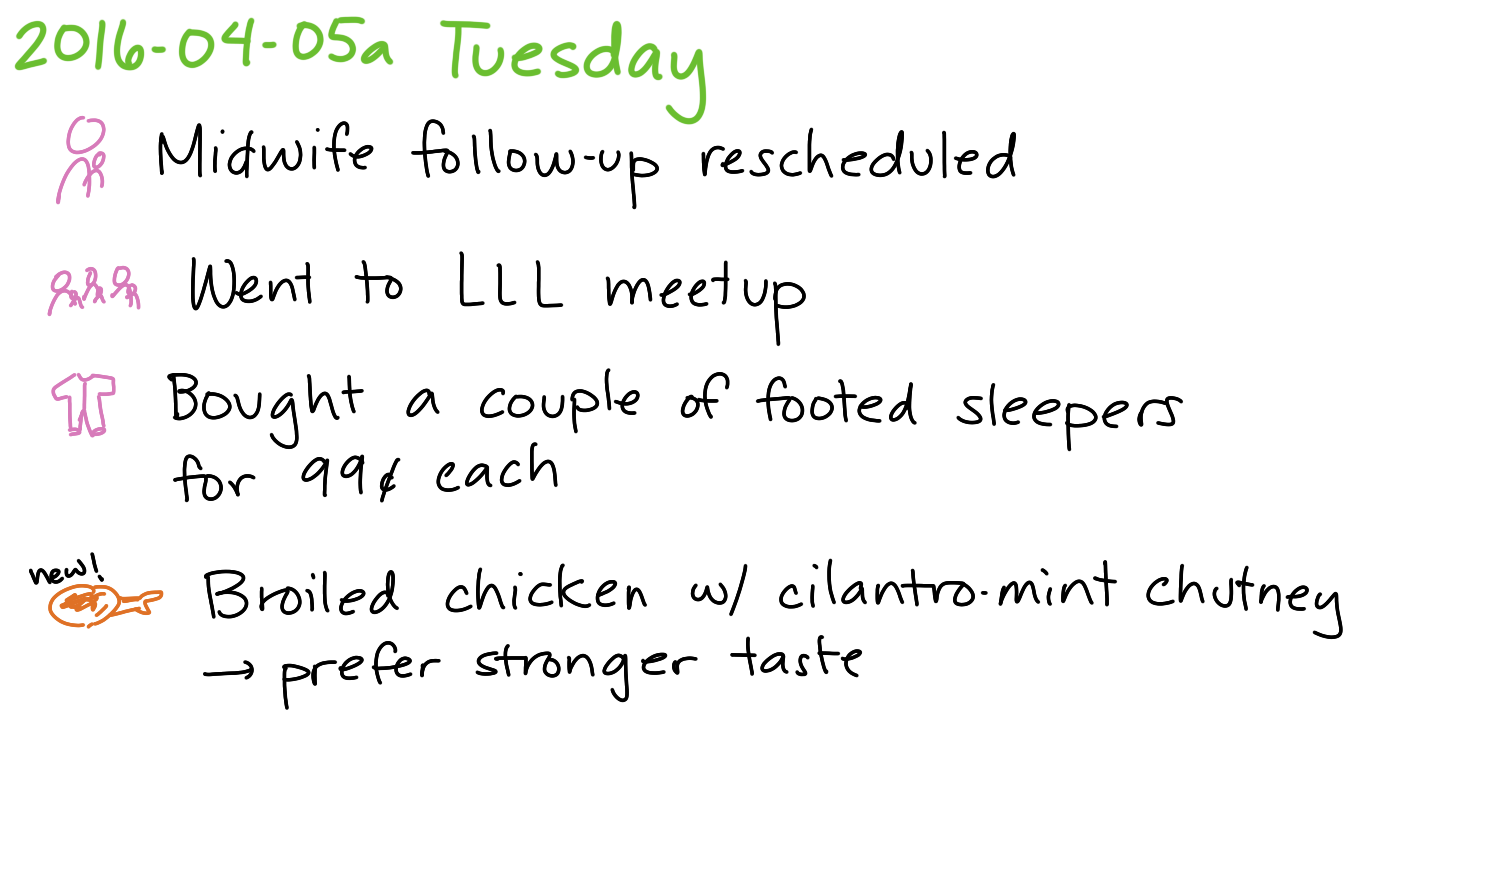 2016-04-05a Tuesday -- index card #journal.png